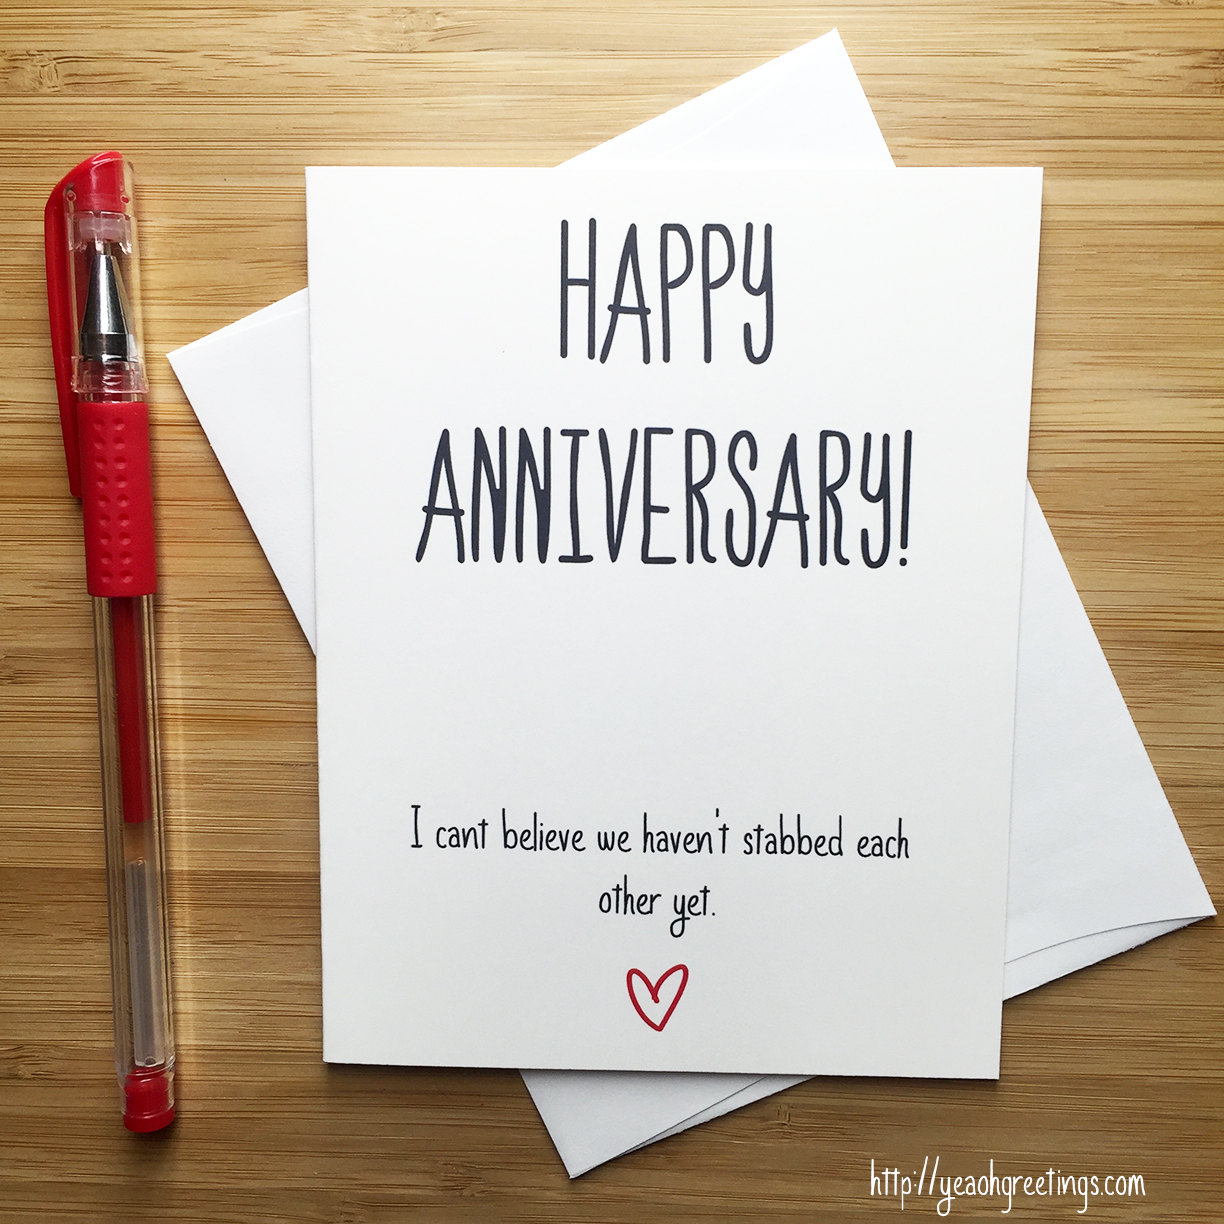 Funny One Month Anniversary Quotes: Anniversary Card Love Card Happy Anniversary Funny